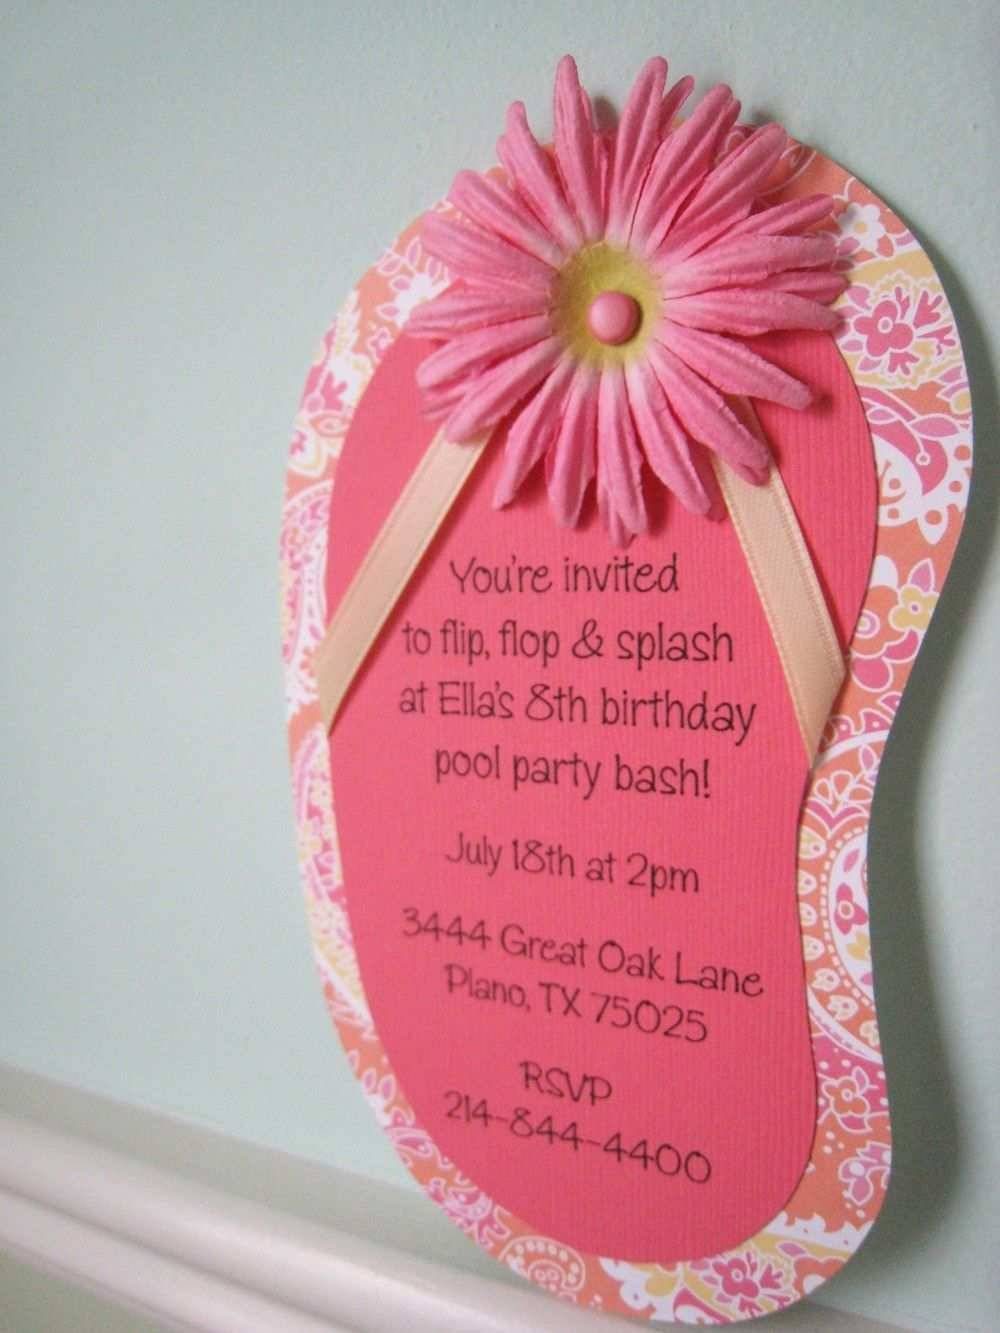 Flip Flop Invitation Google Search Pool Birthday Party Luau Birthday Party